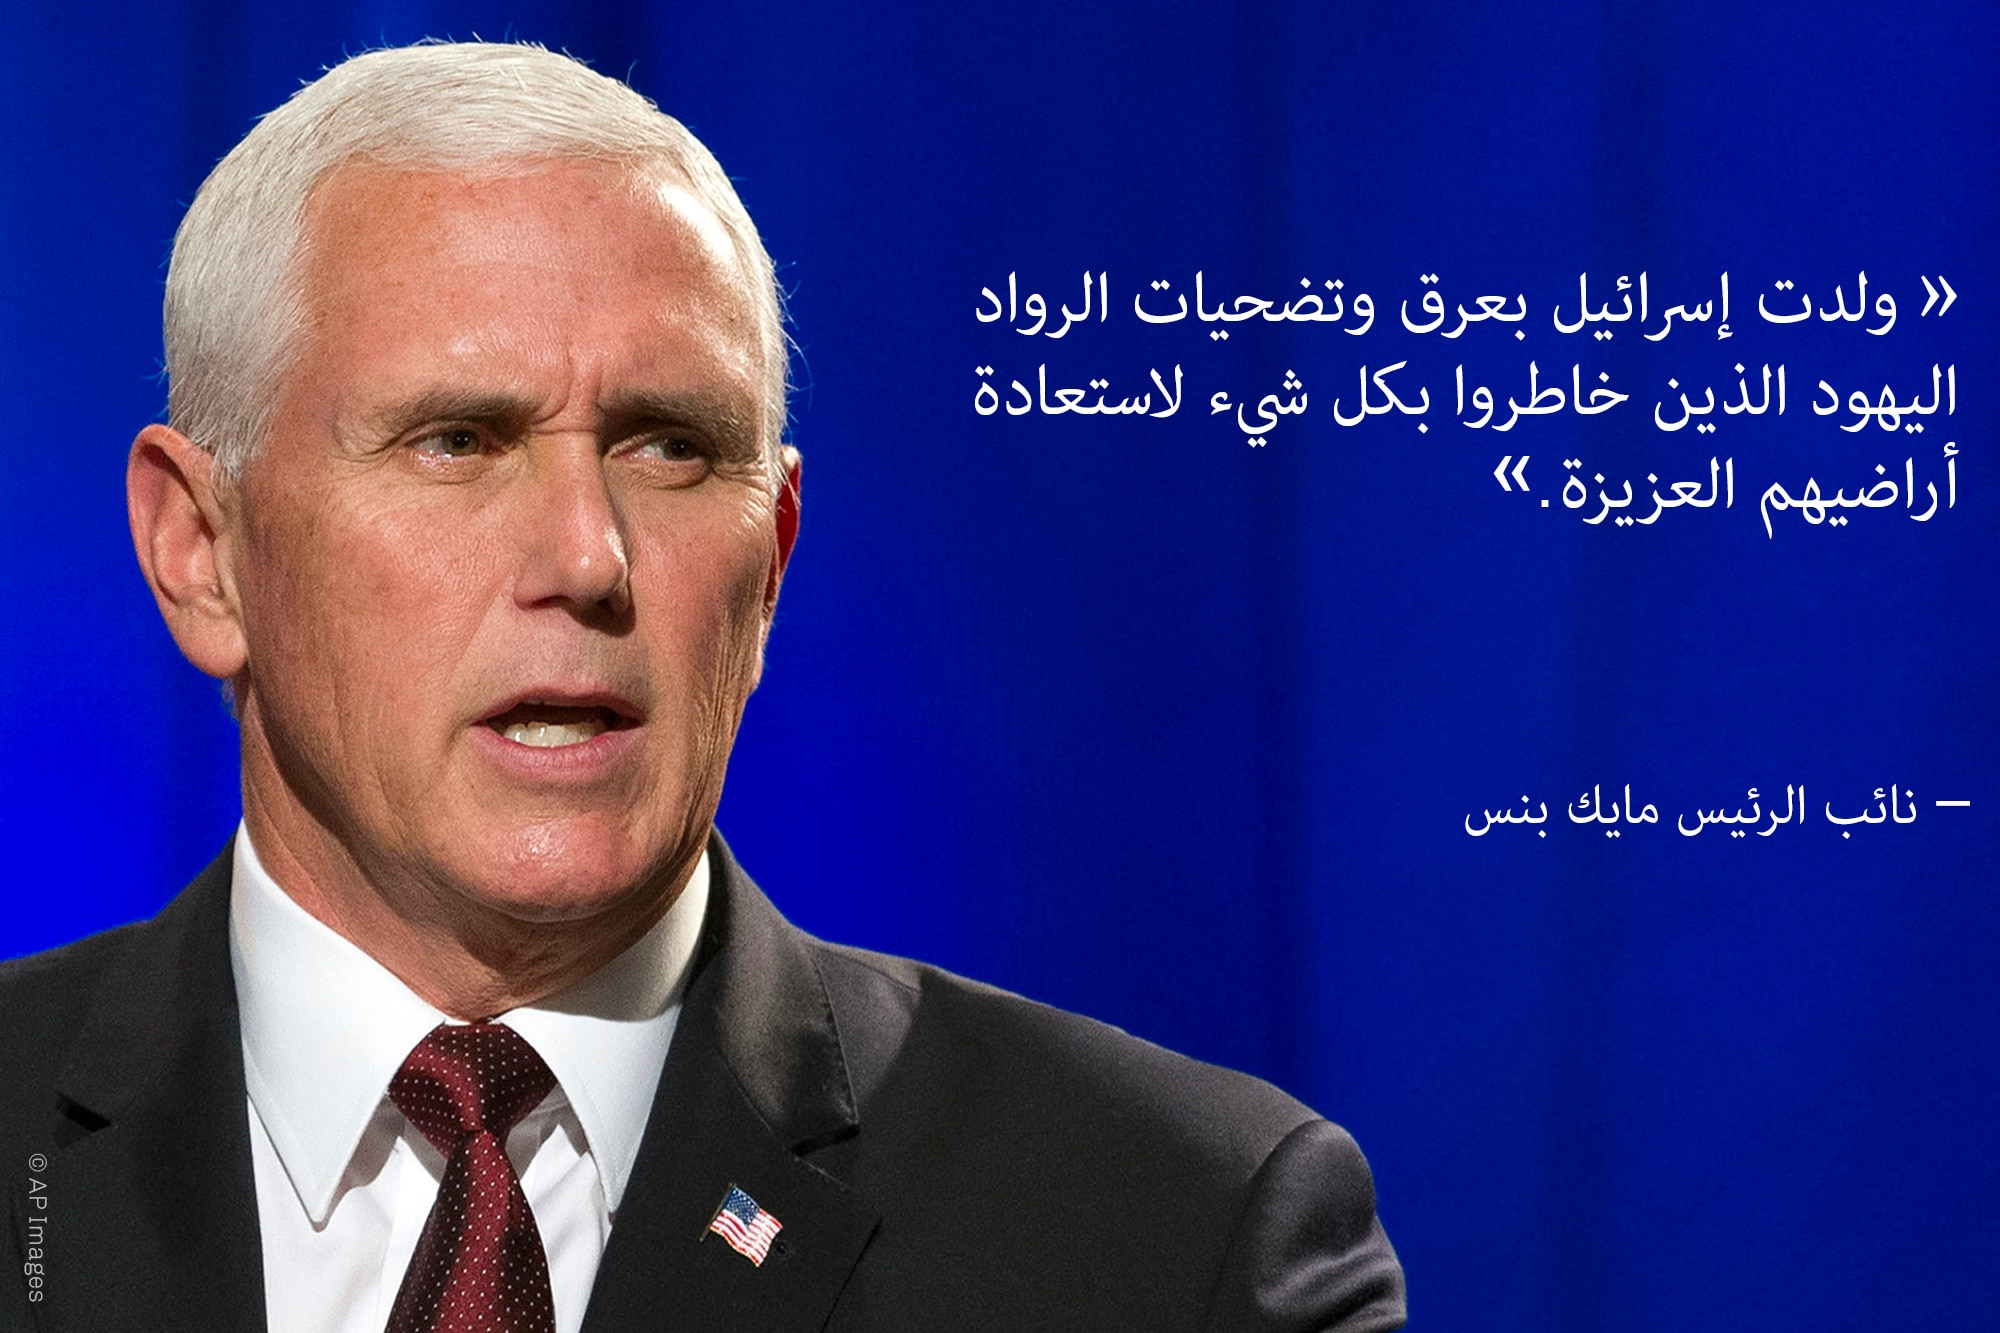 Quote from Vice President Pence on sacrifice of Jewish pioneers, with photo of Pence (© AP Images)